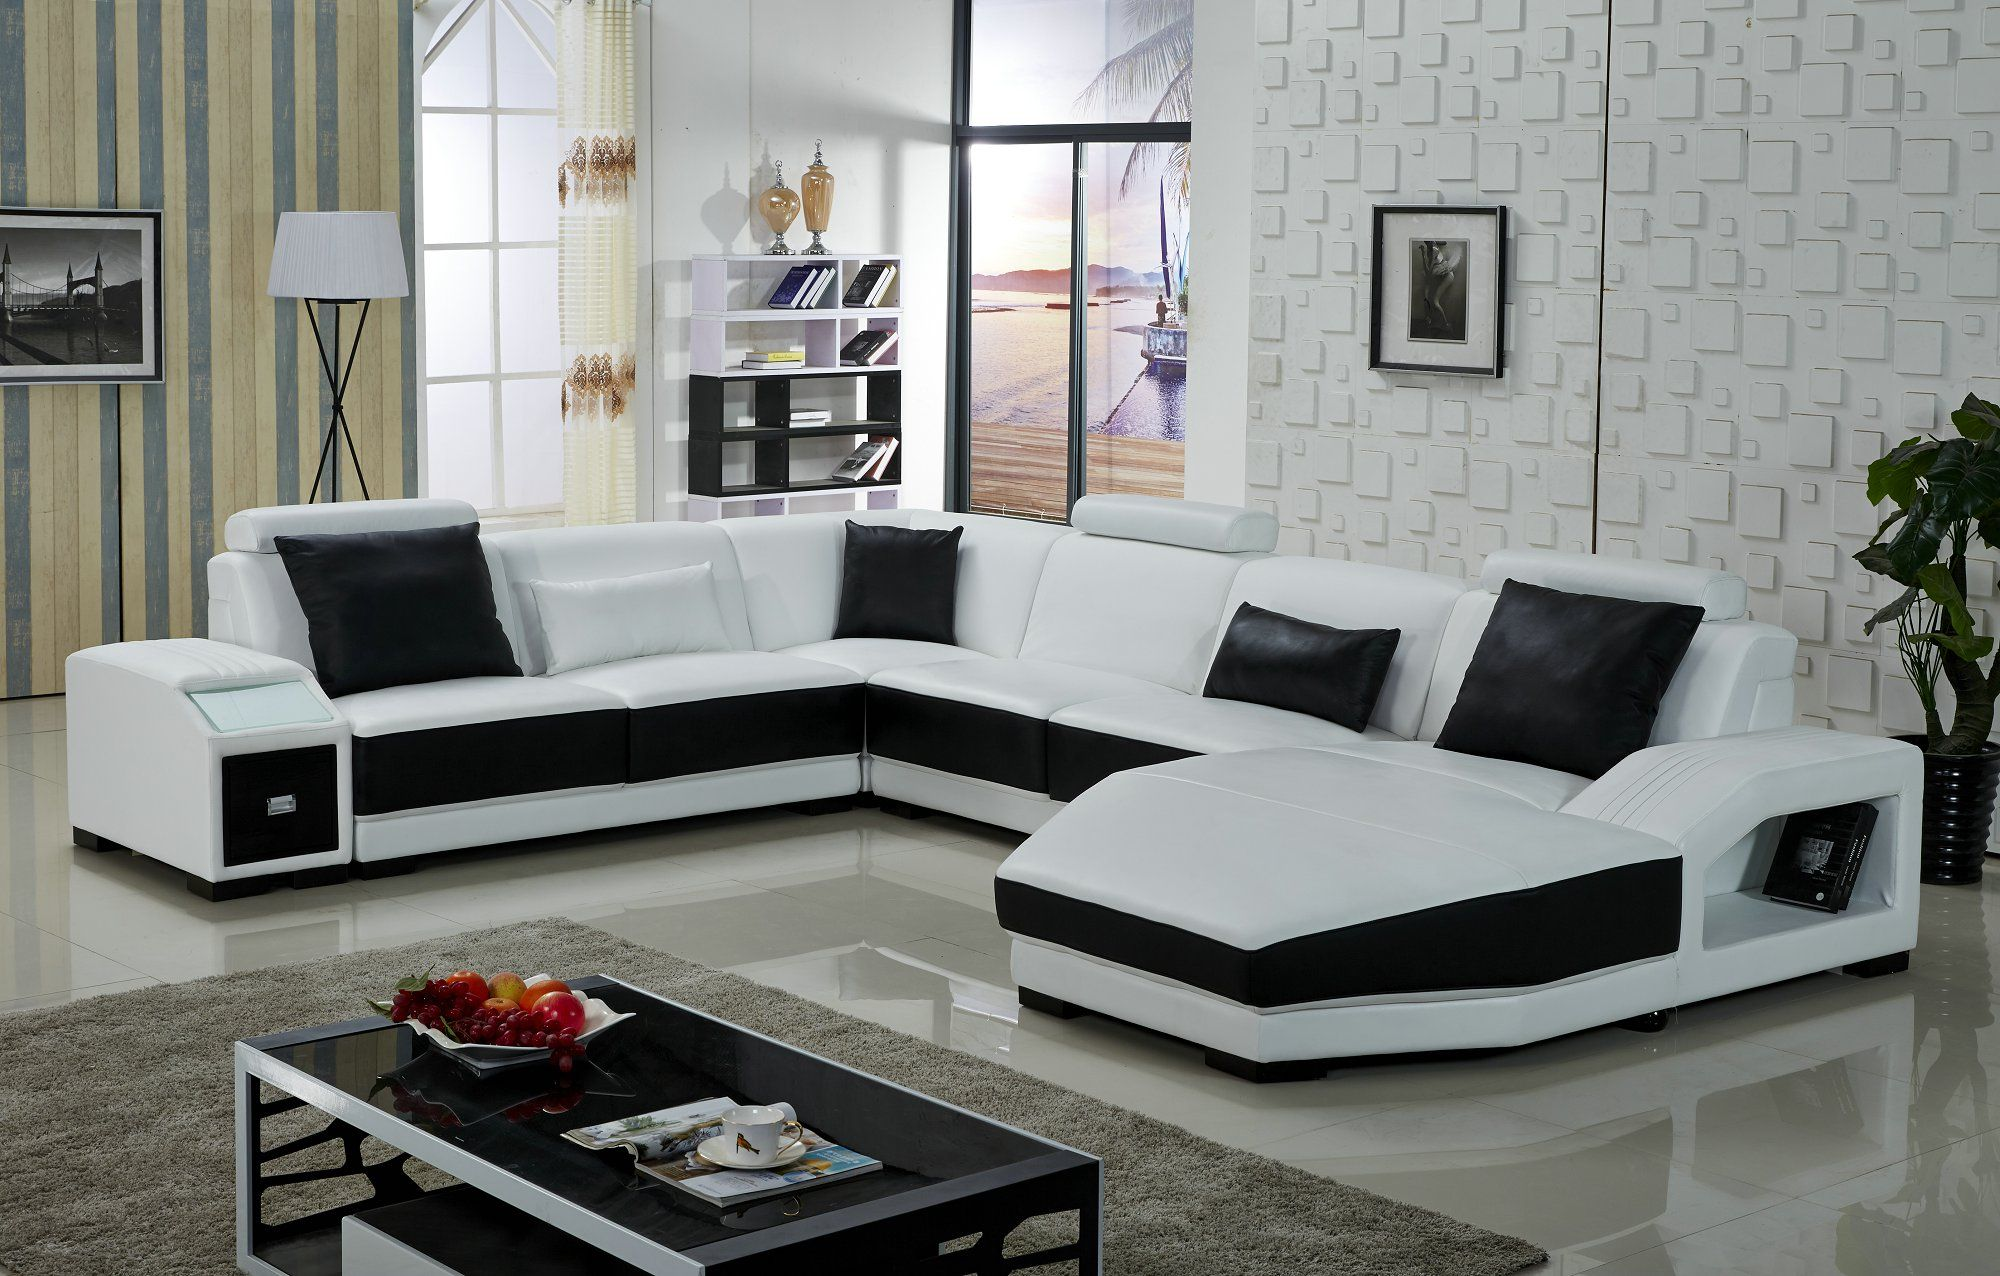 White U Shaped Sofa Sofa Set Designs Living Room Sofa Design Sofa Design